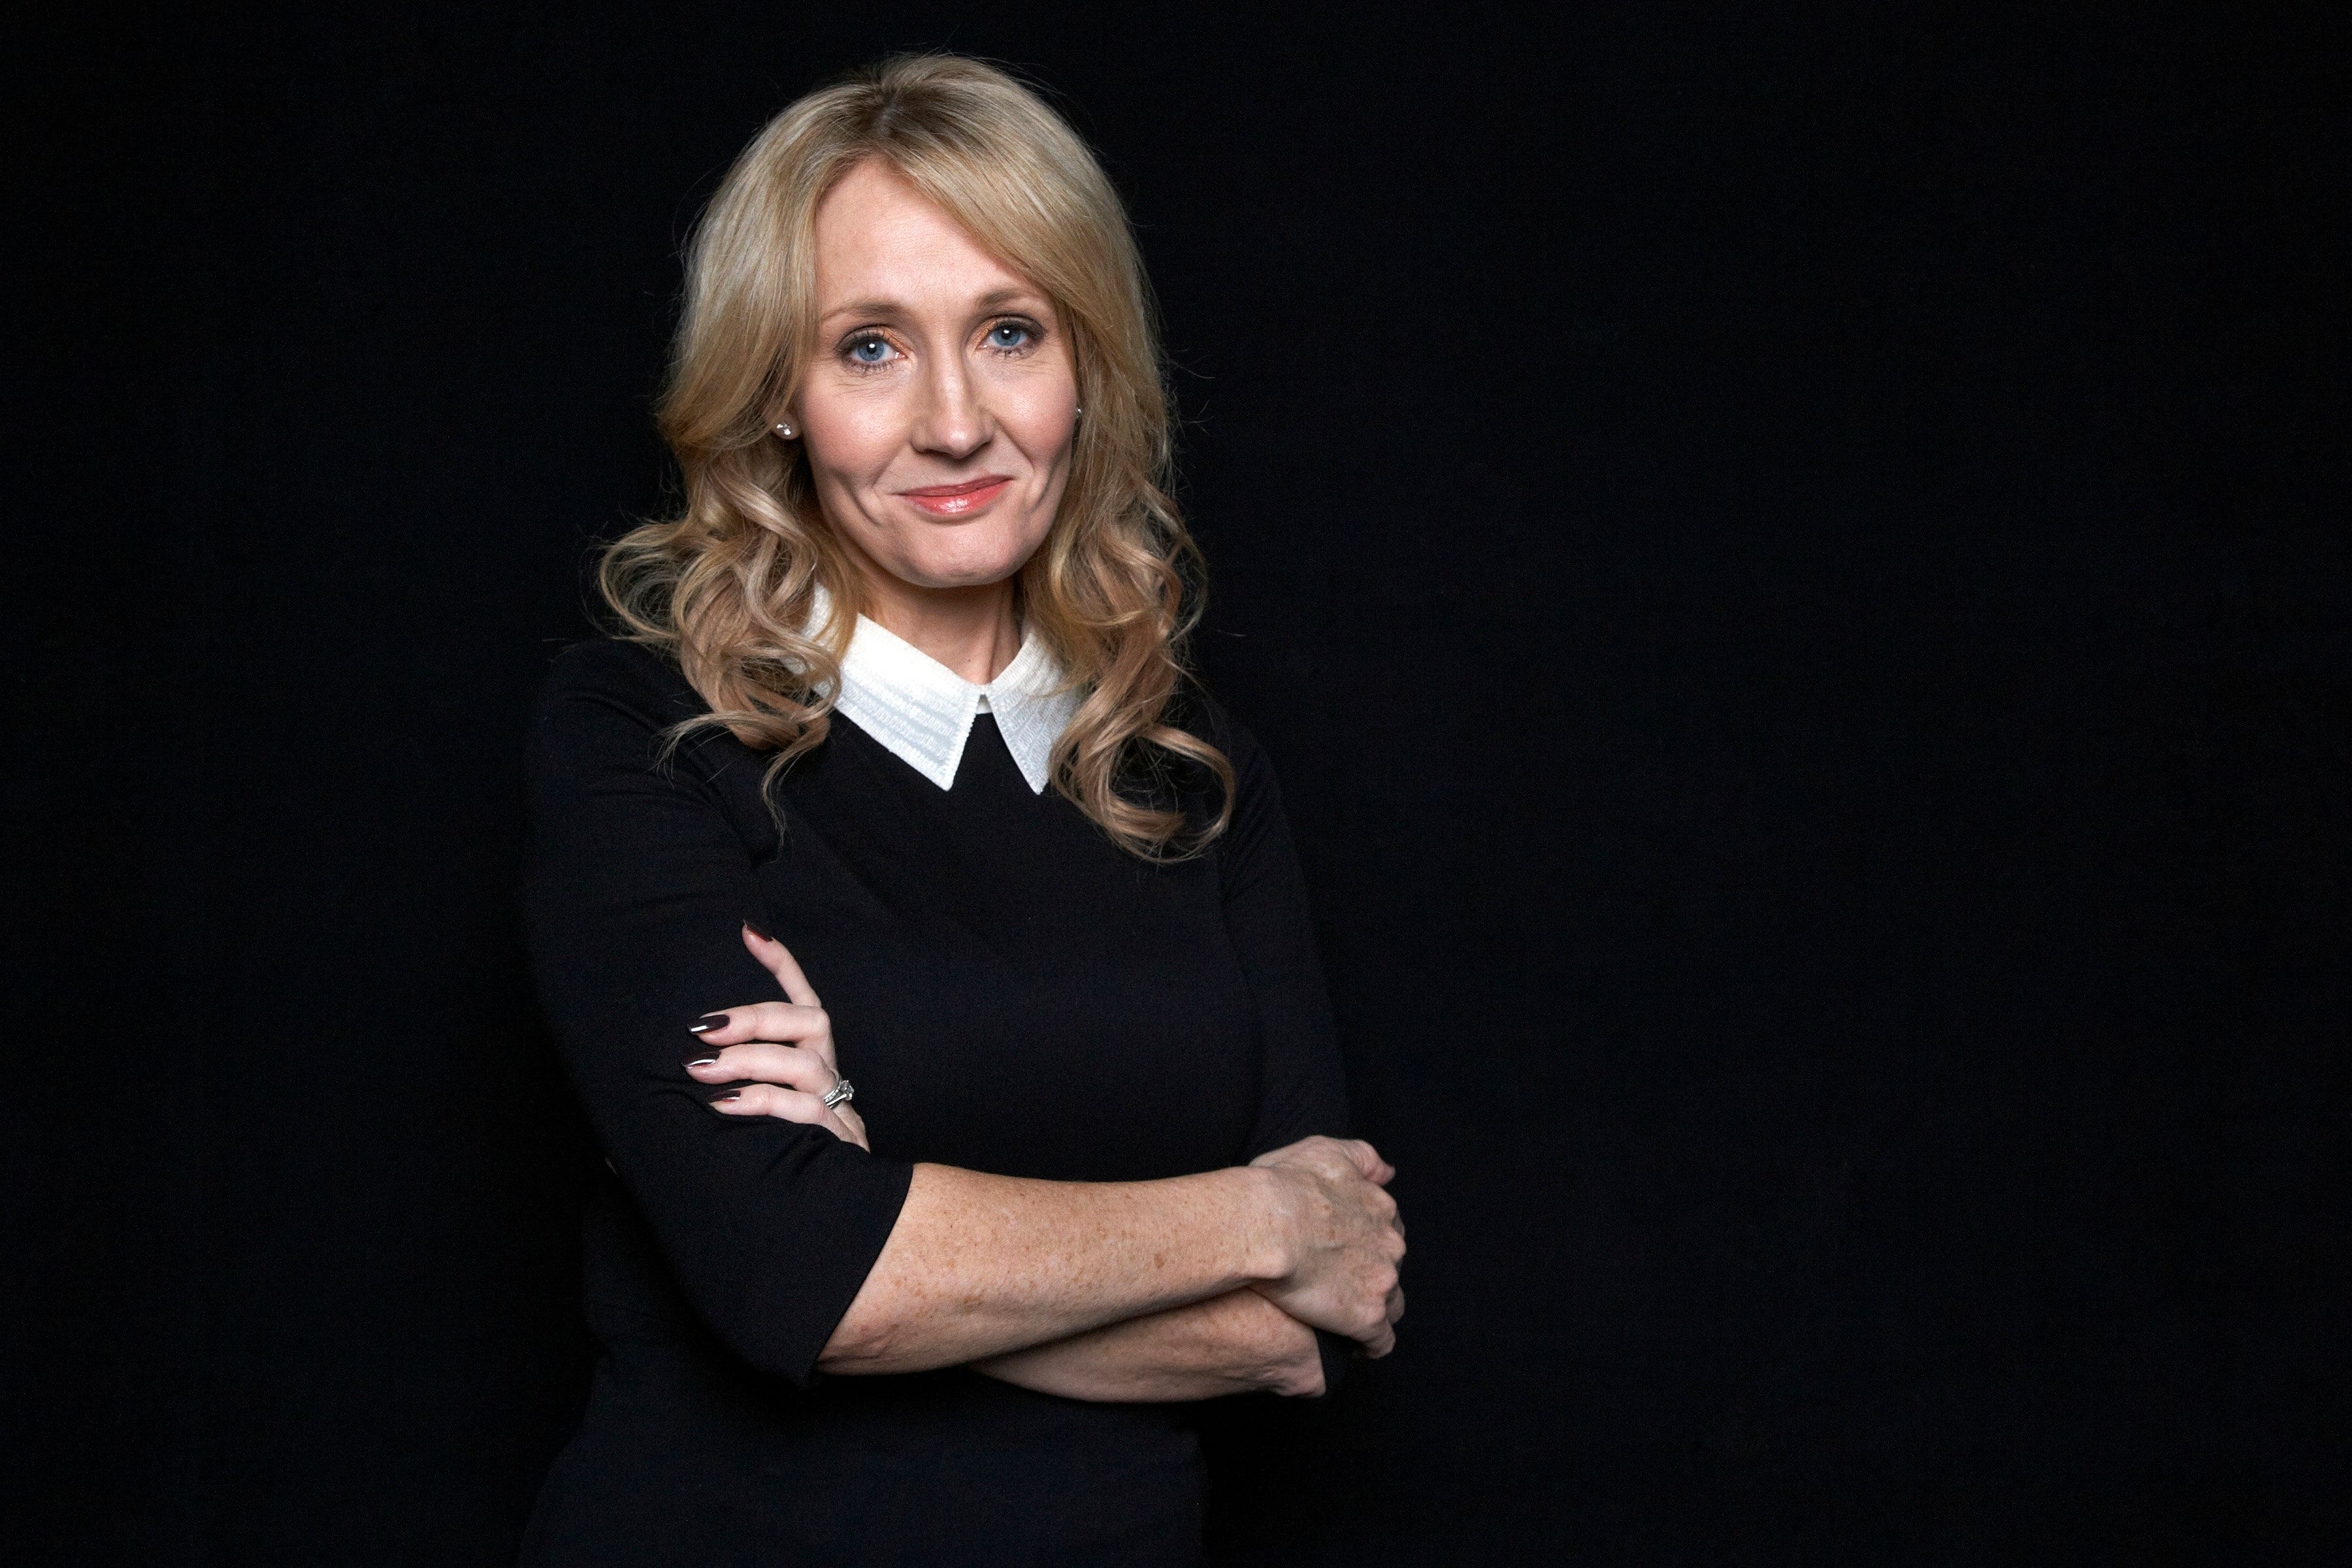 JK Rowling Apologises For Character's Death On Battle Of Hogwarts